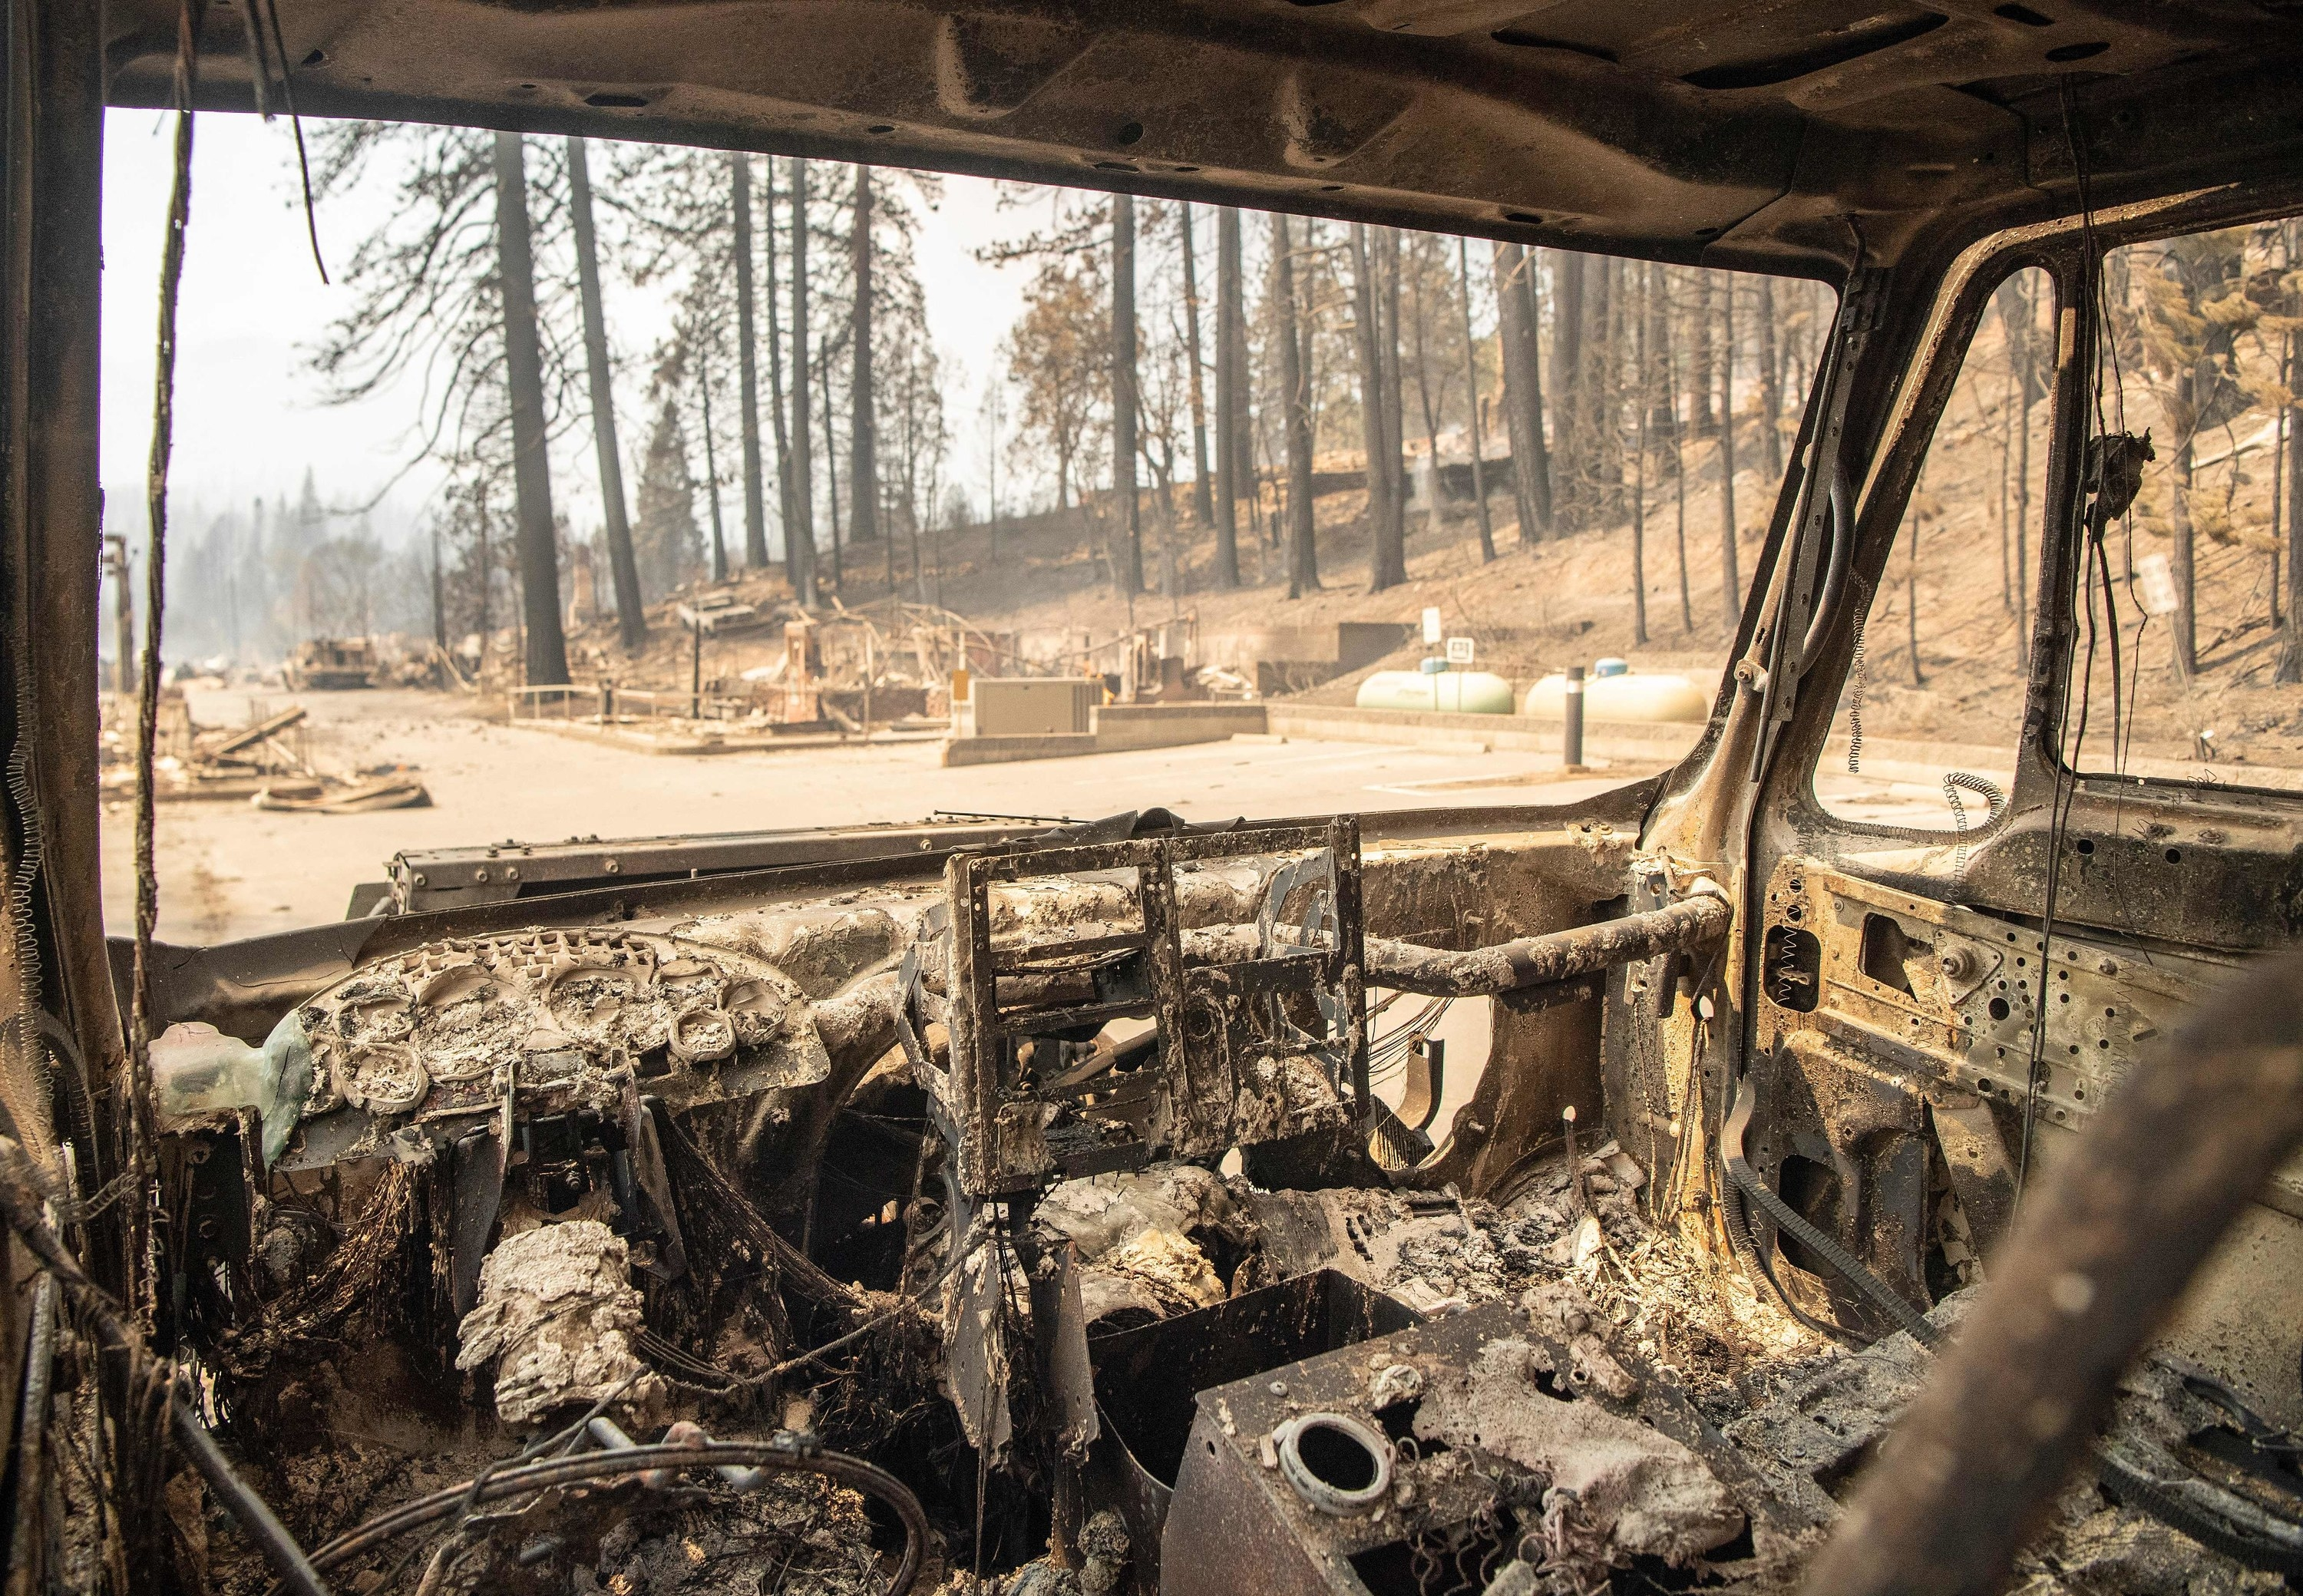 The inside of a car is destroyed, parked among desolation and burned-out debris